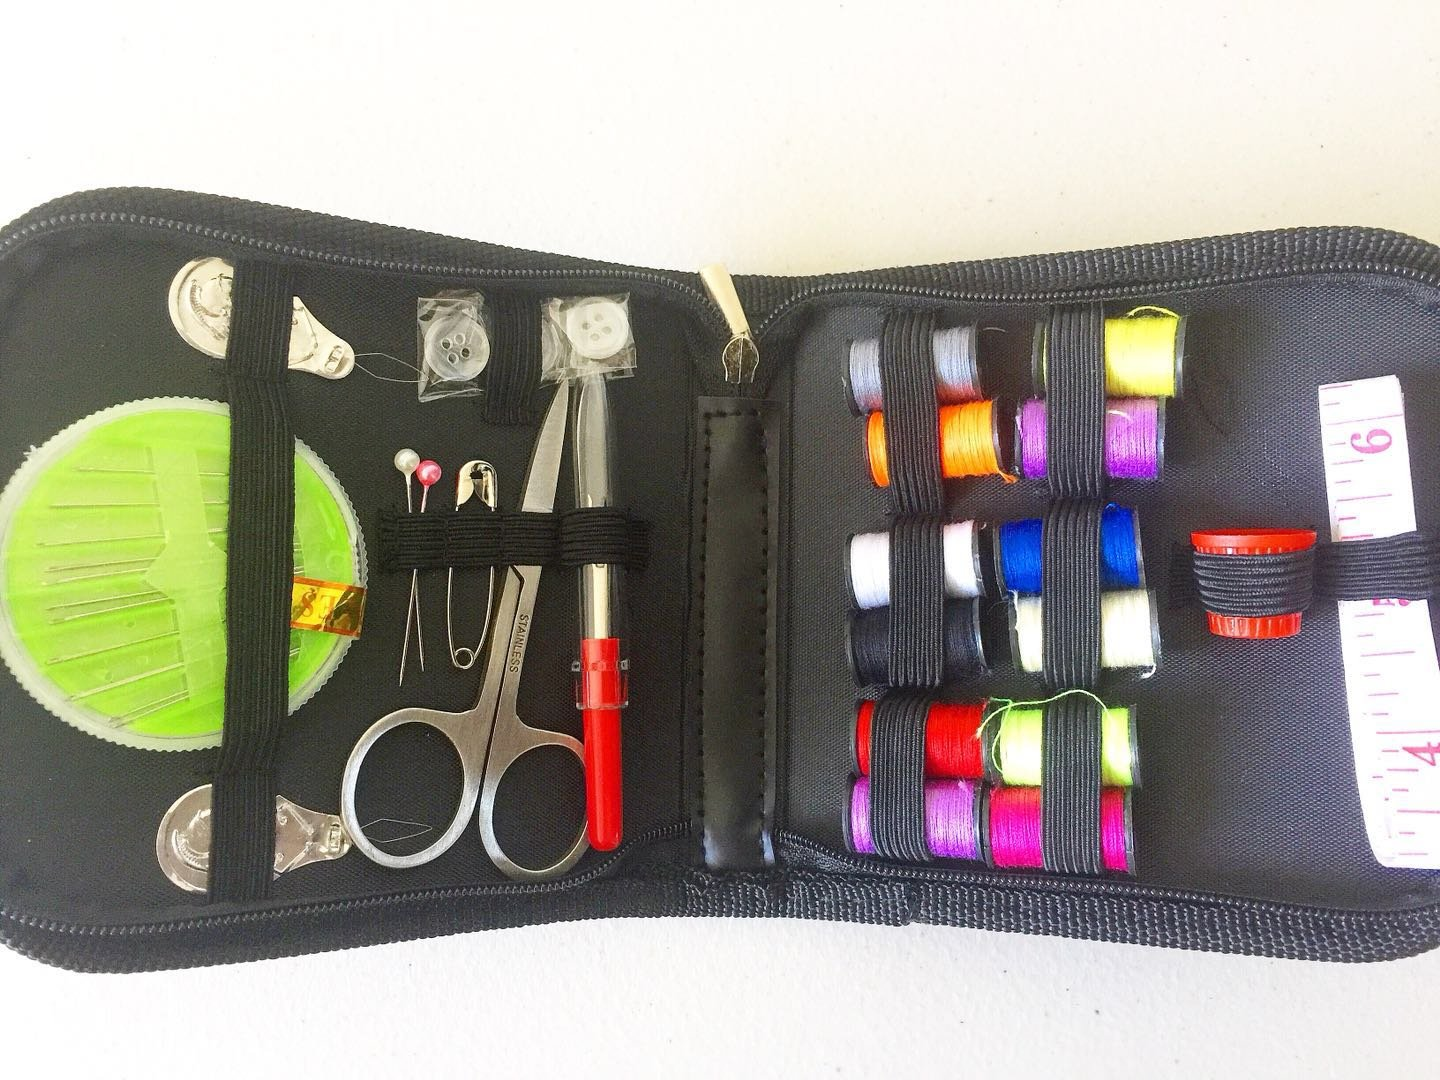 Virtual Tech Best Sewing Kit for Travel, Emergency, Sewing Supplies with Scissors, Thimble, Thread, Needles, Tape Measure, Carrying Case and Accessories